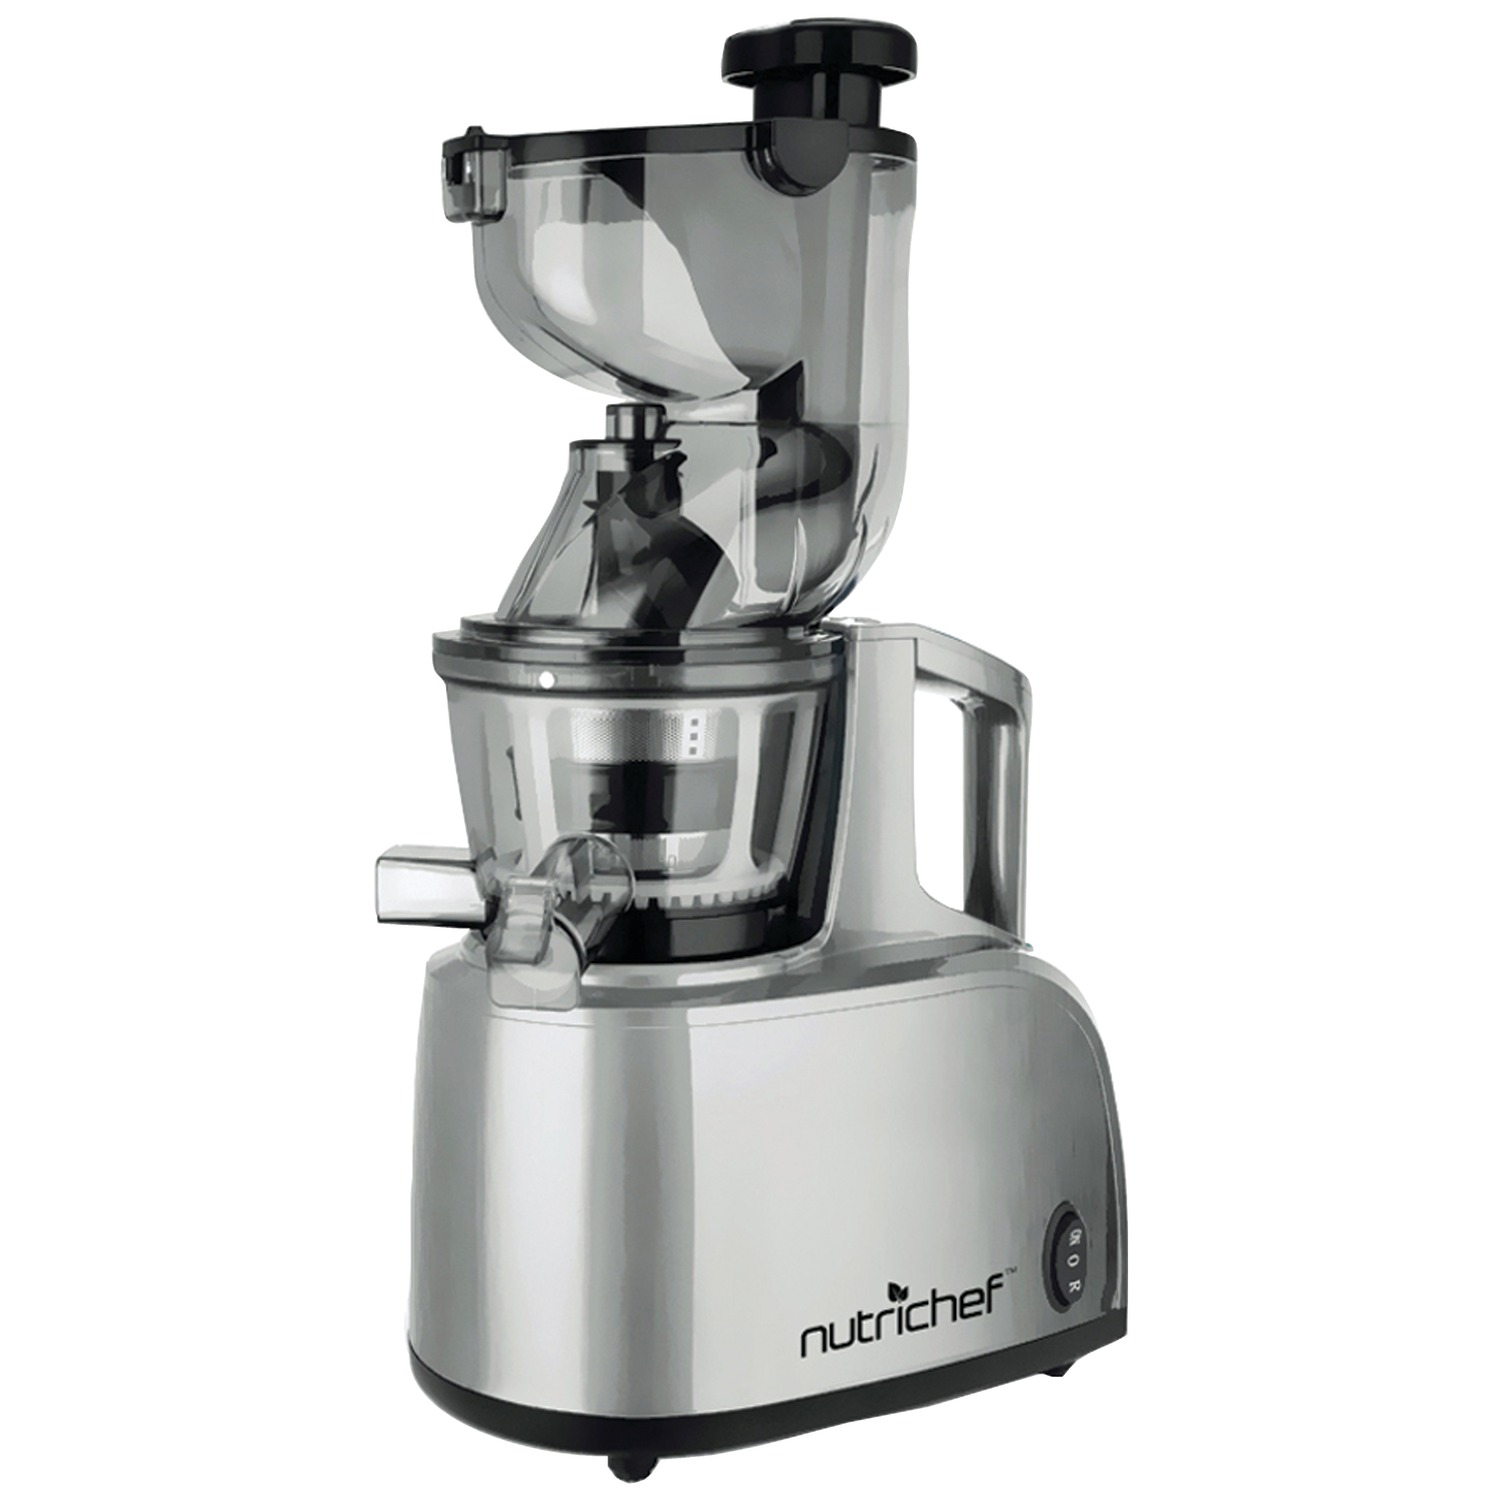 Slow Juicer Deals : NUTRICHEF PKSJ40 Countertop Masticating Slow Juicer ...